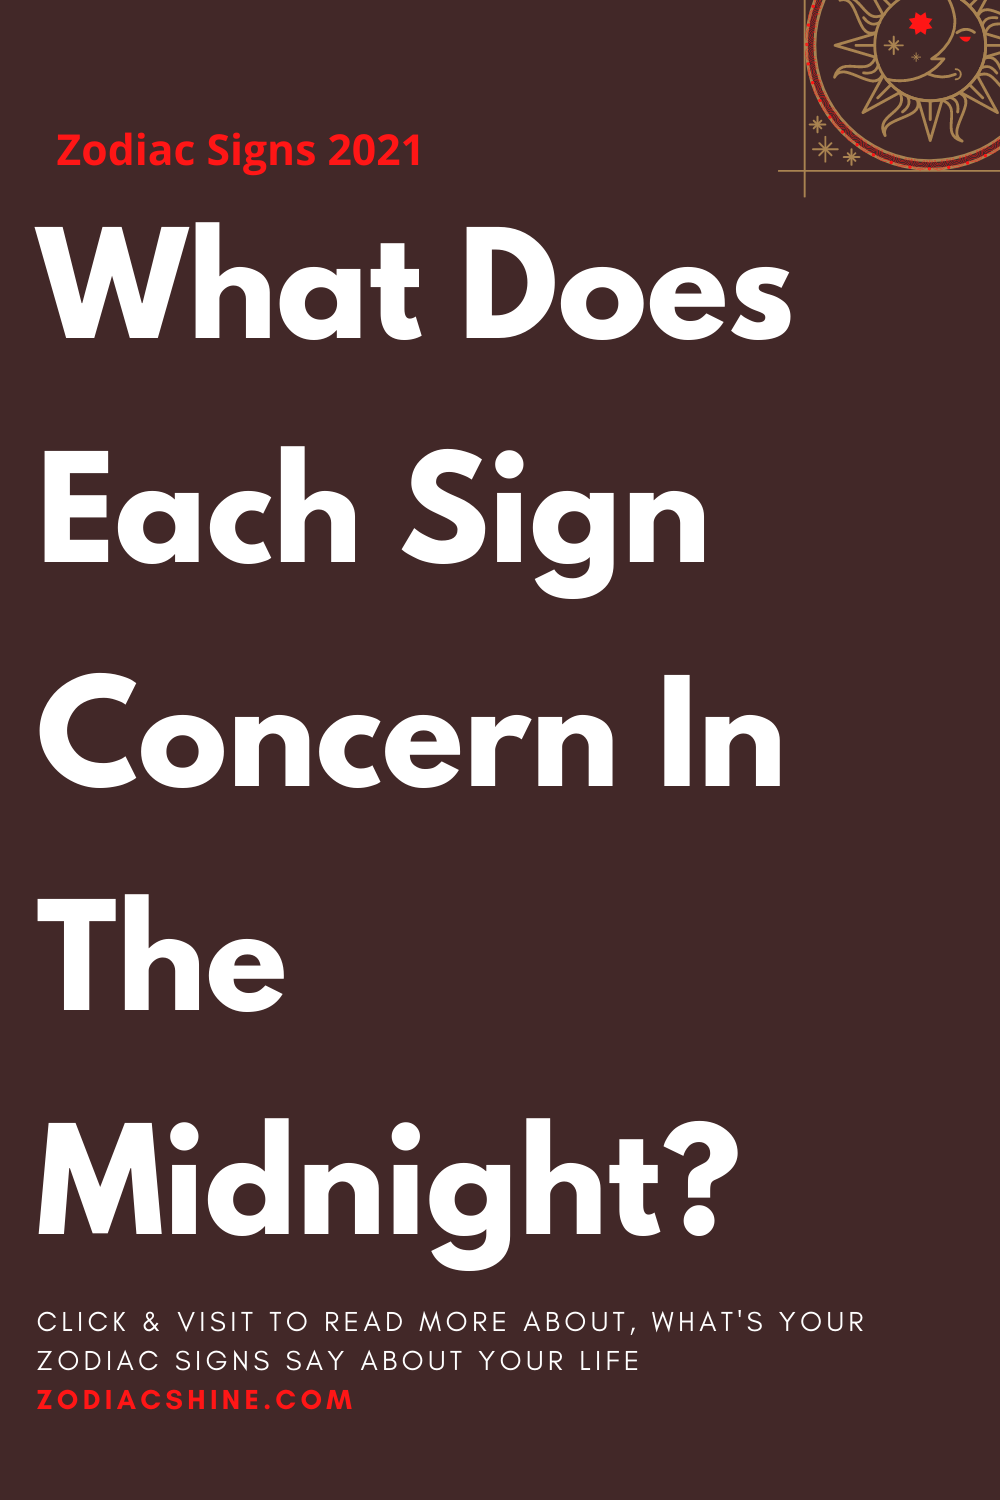 What Does Each Sign Concern In The Midnight?